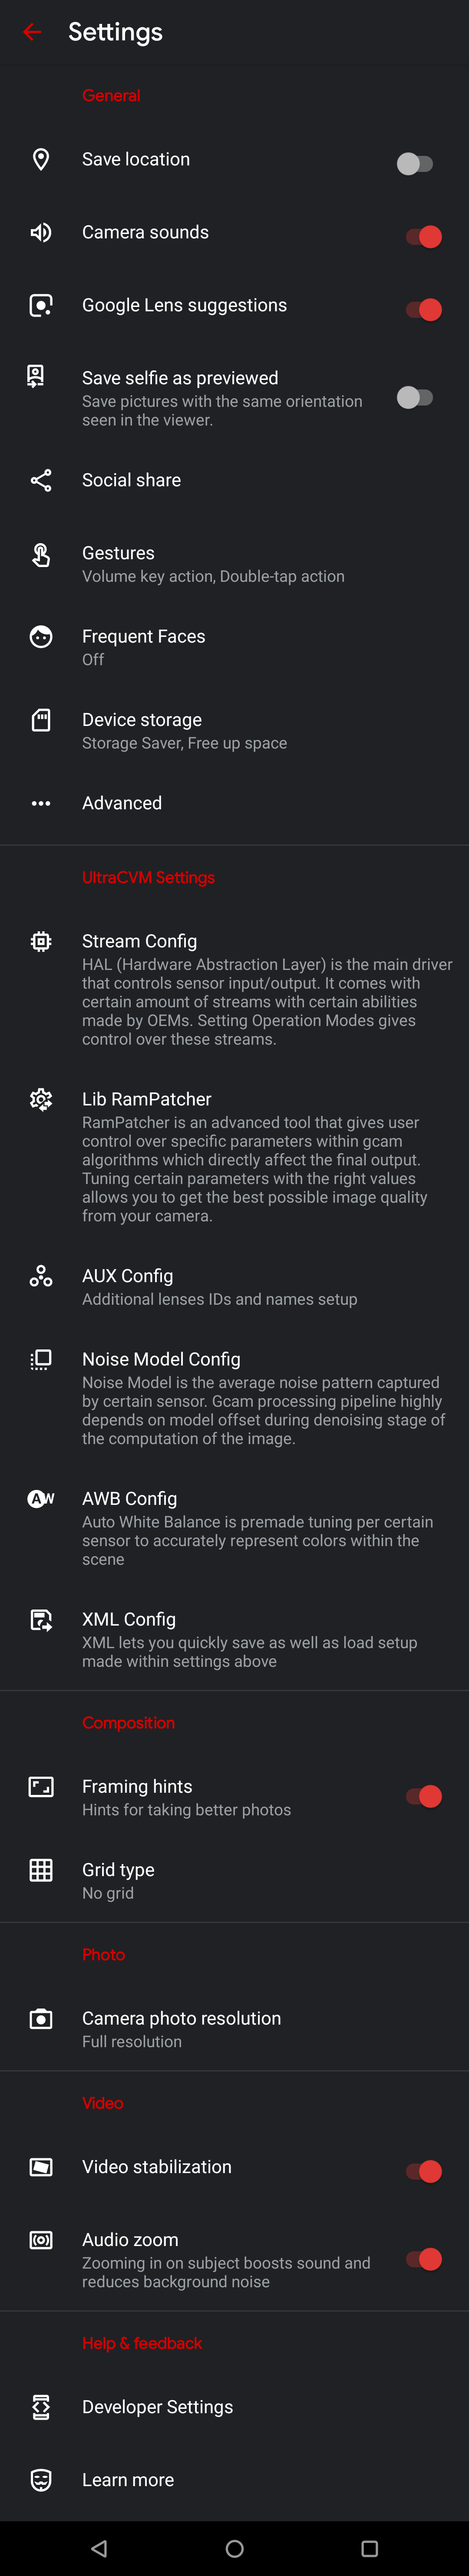 UltraCVM GCam 8 Settings